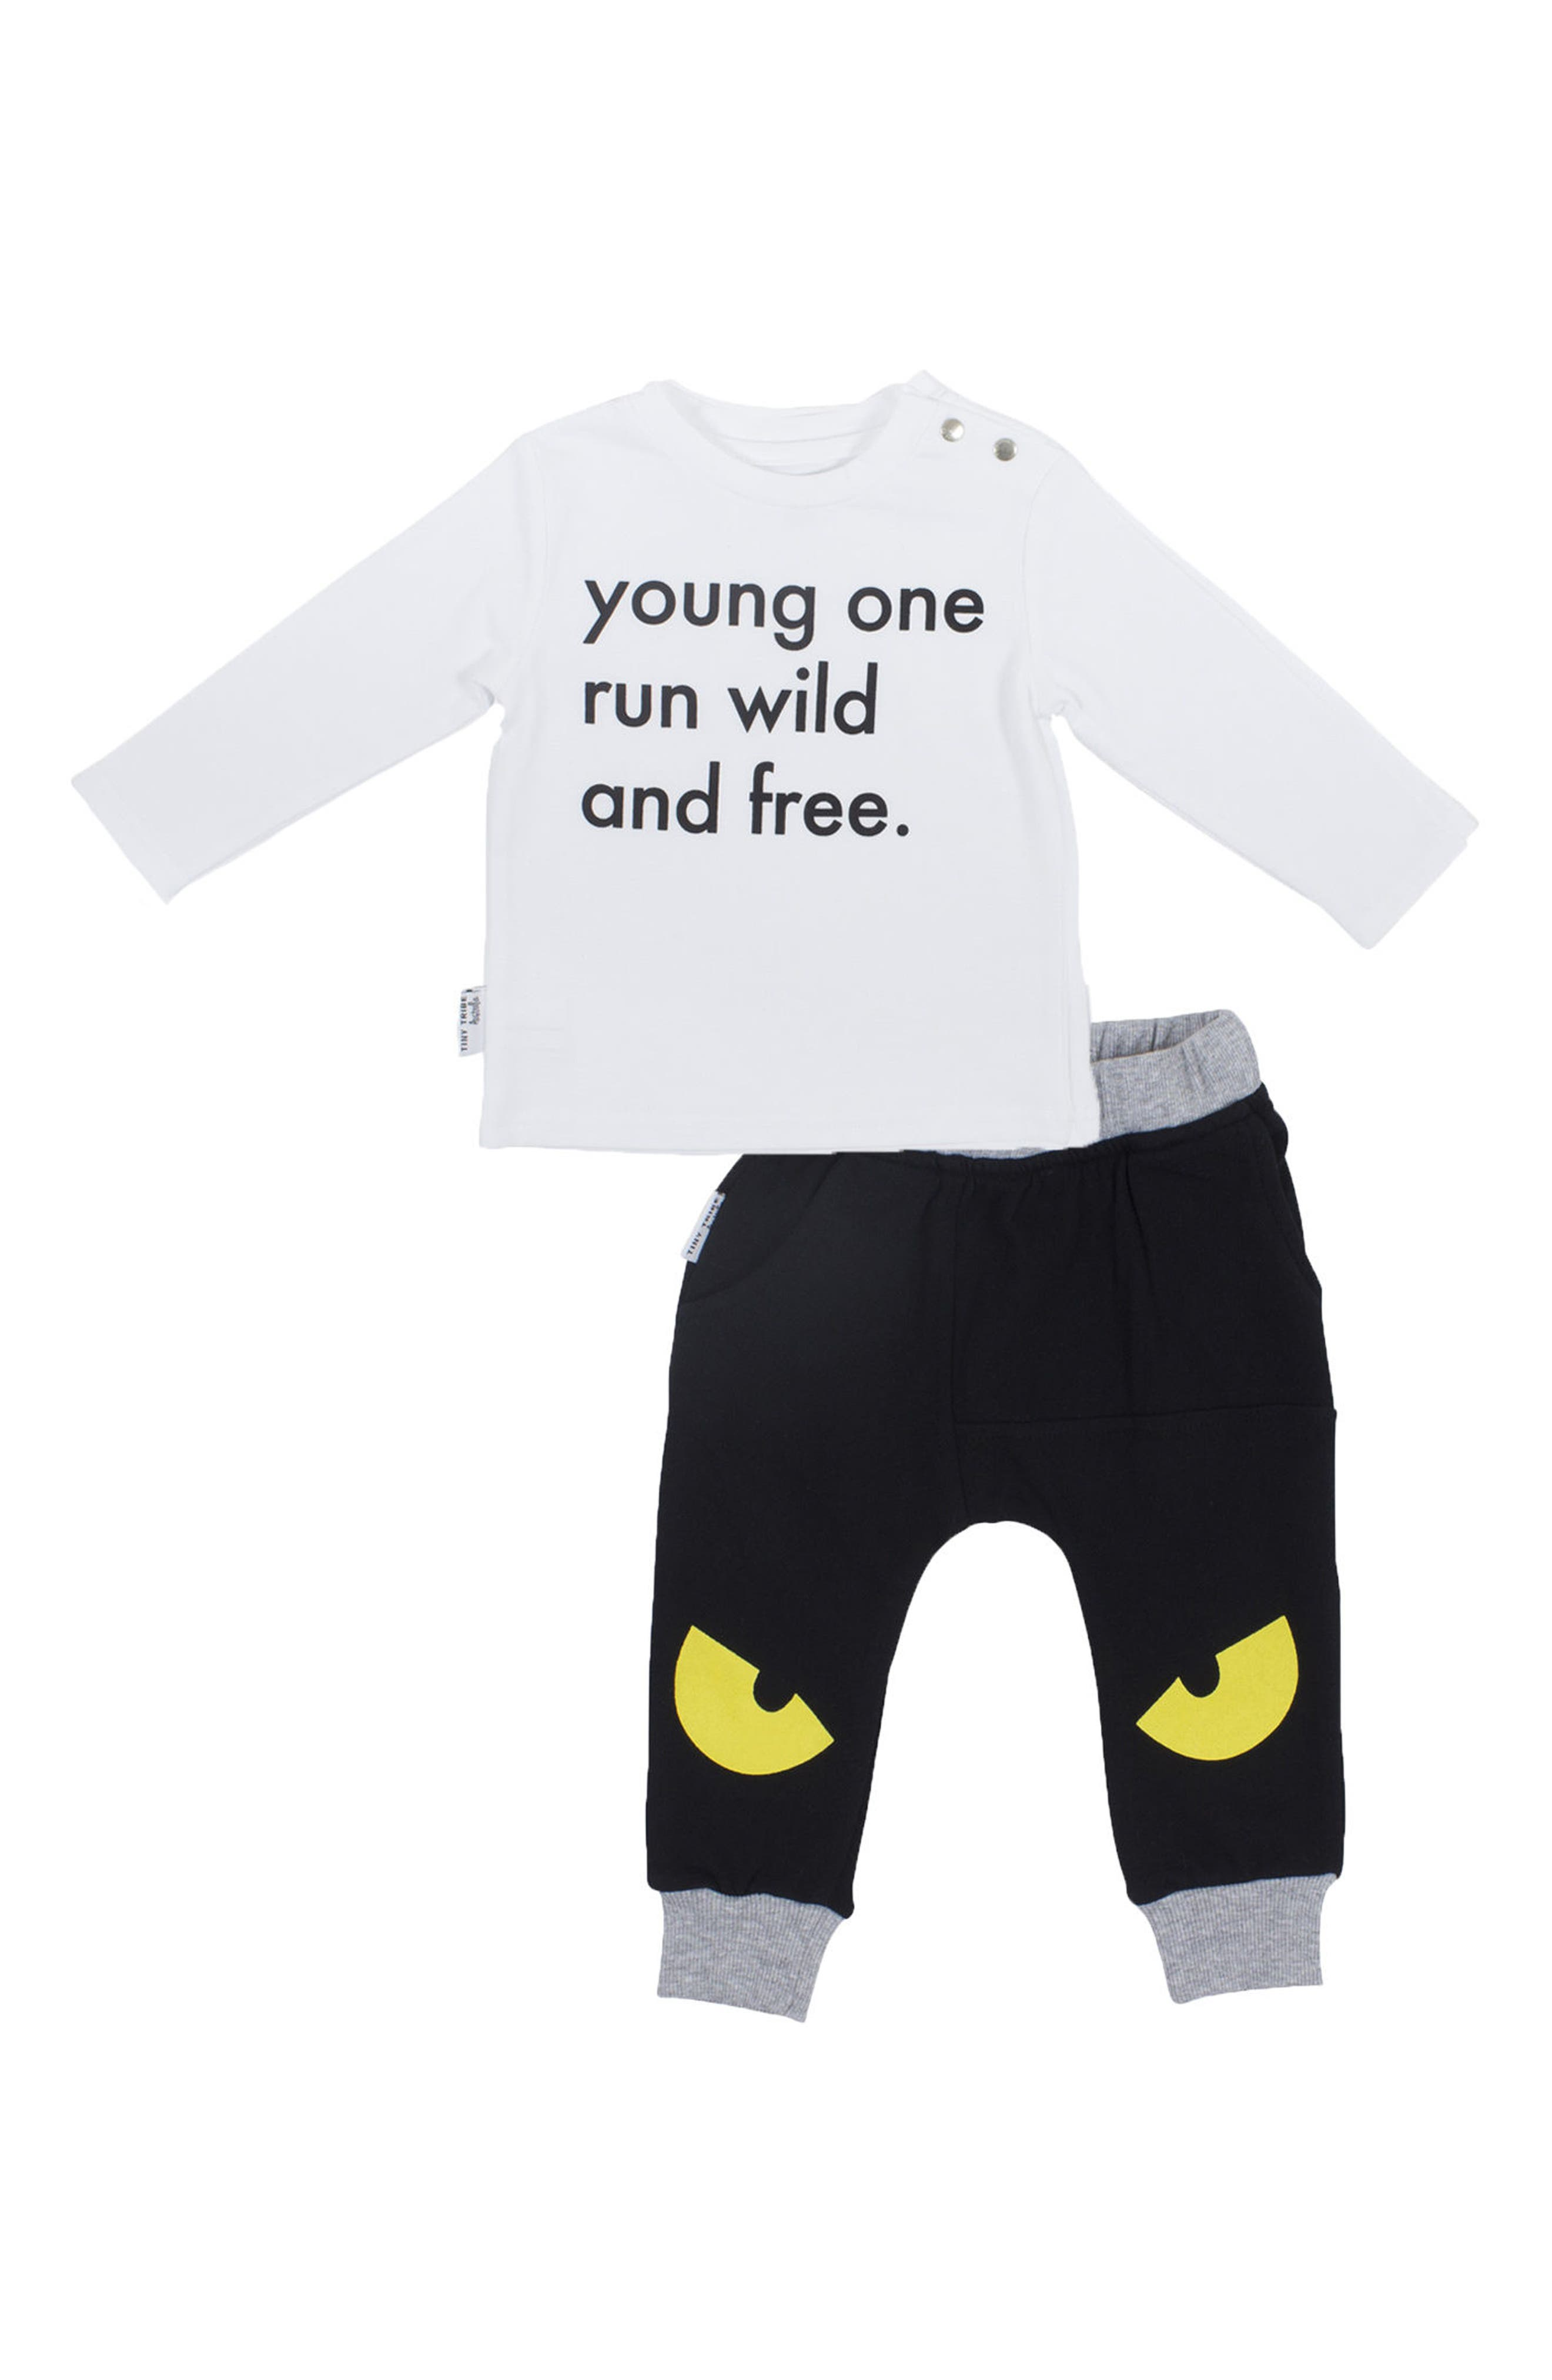 Run Wild & Free T-Shirt & Jogger Pants Set,                         Main,                         color, White/ Black